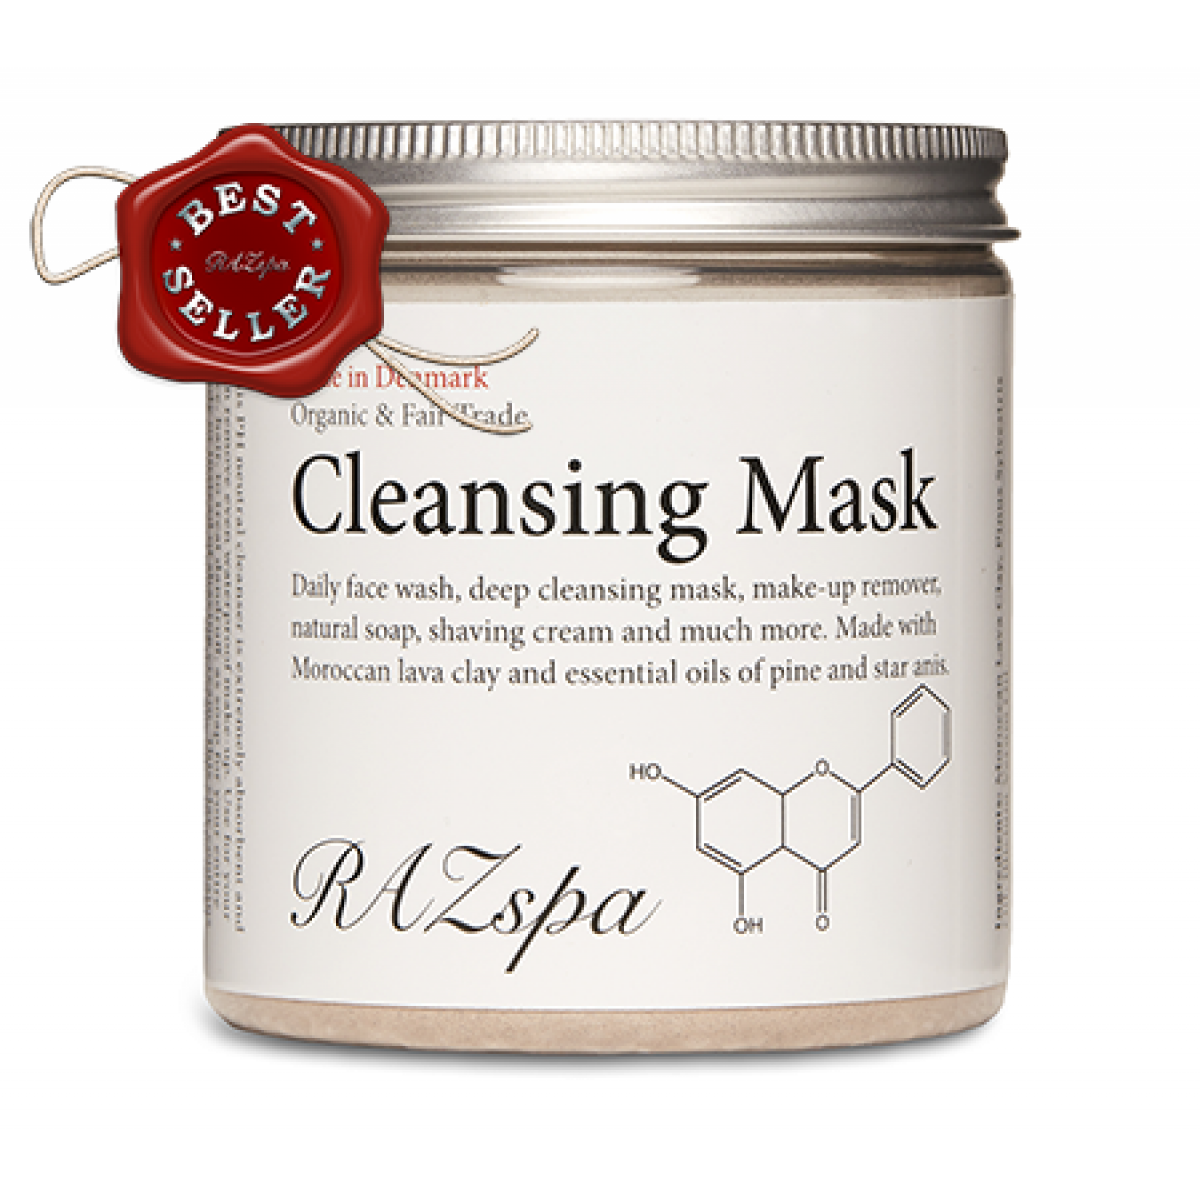 CleansingMask200GOrganicandFairTrade-31